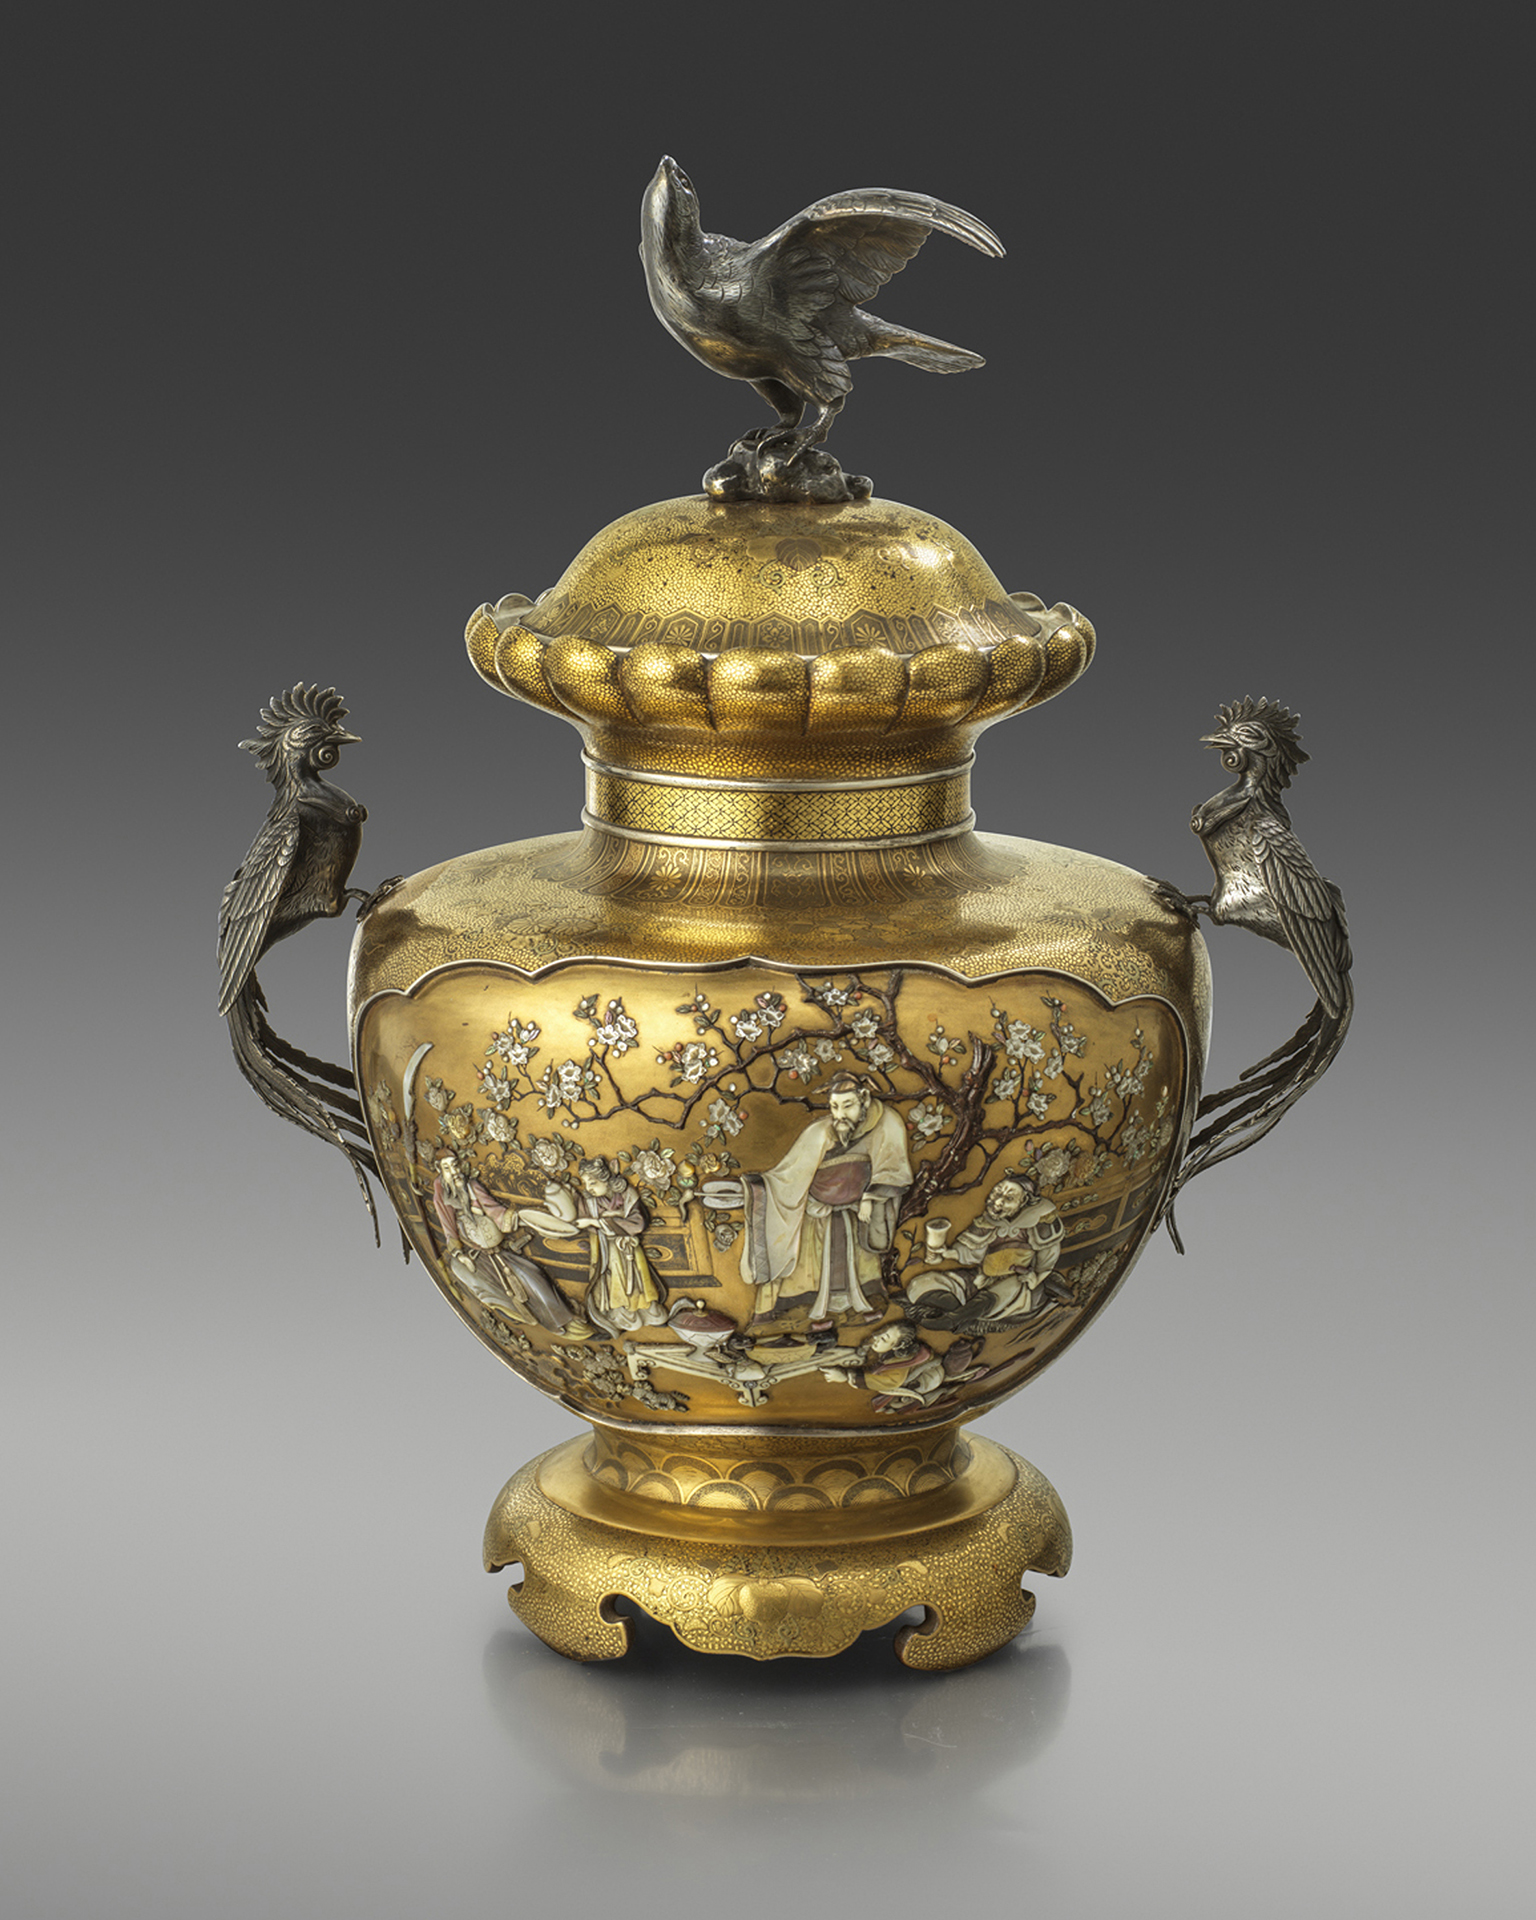 A large Shibayama vase and cover, finely worked with panels of The Three Heroes of Han, applied with silver ho-o handles and surmounted by an eagle finial. Signed on a mother of pearl tablet Harumasa, Meiji Period Circa 1890